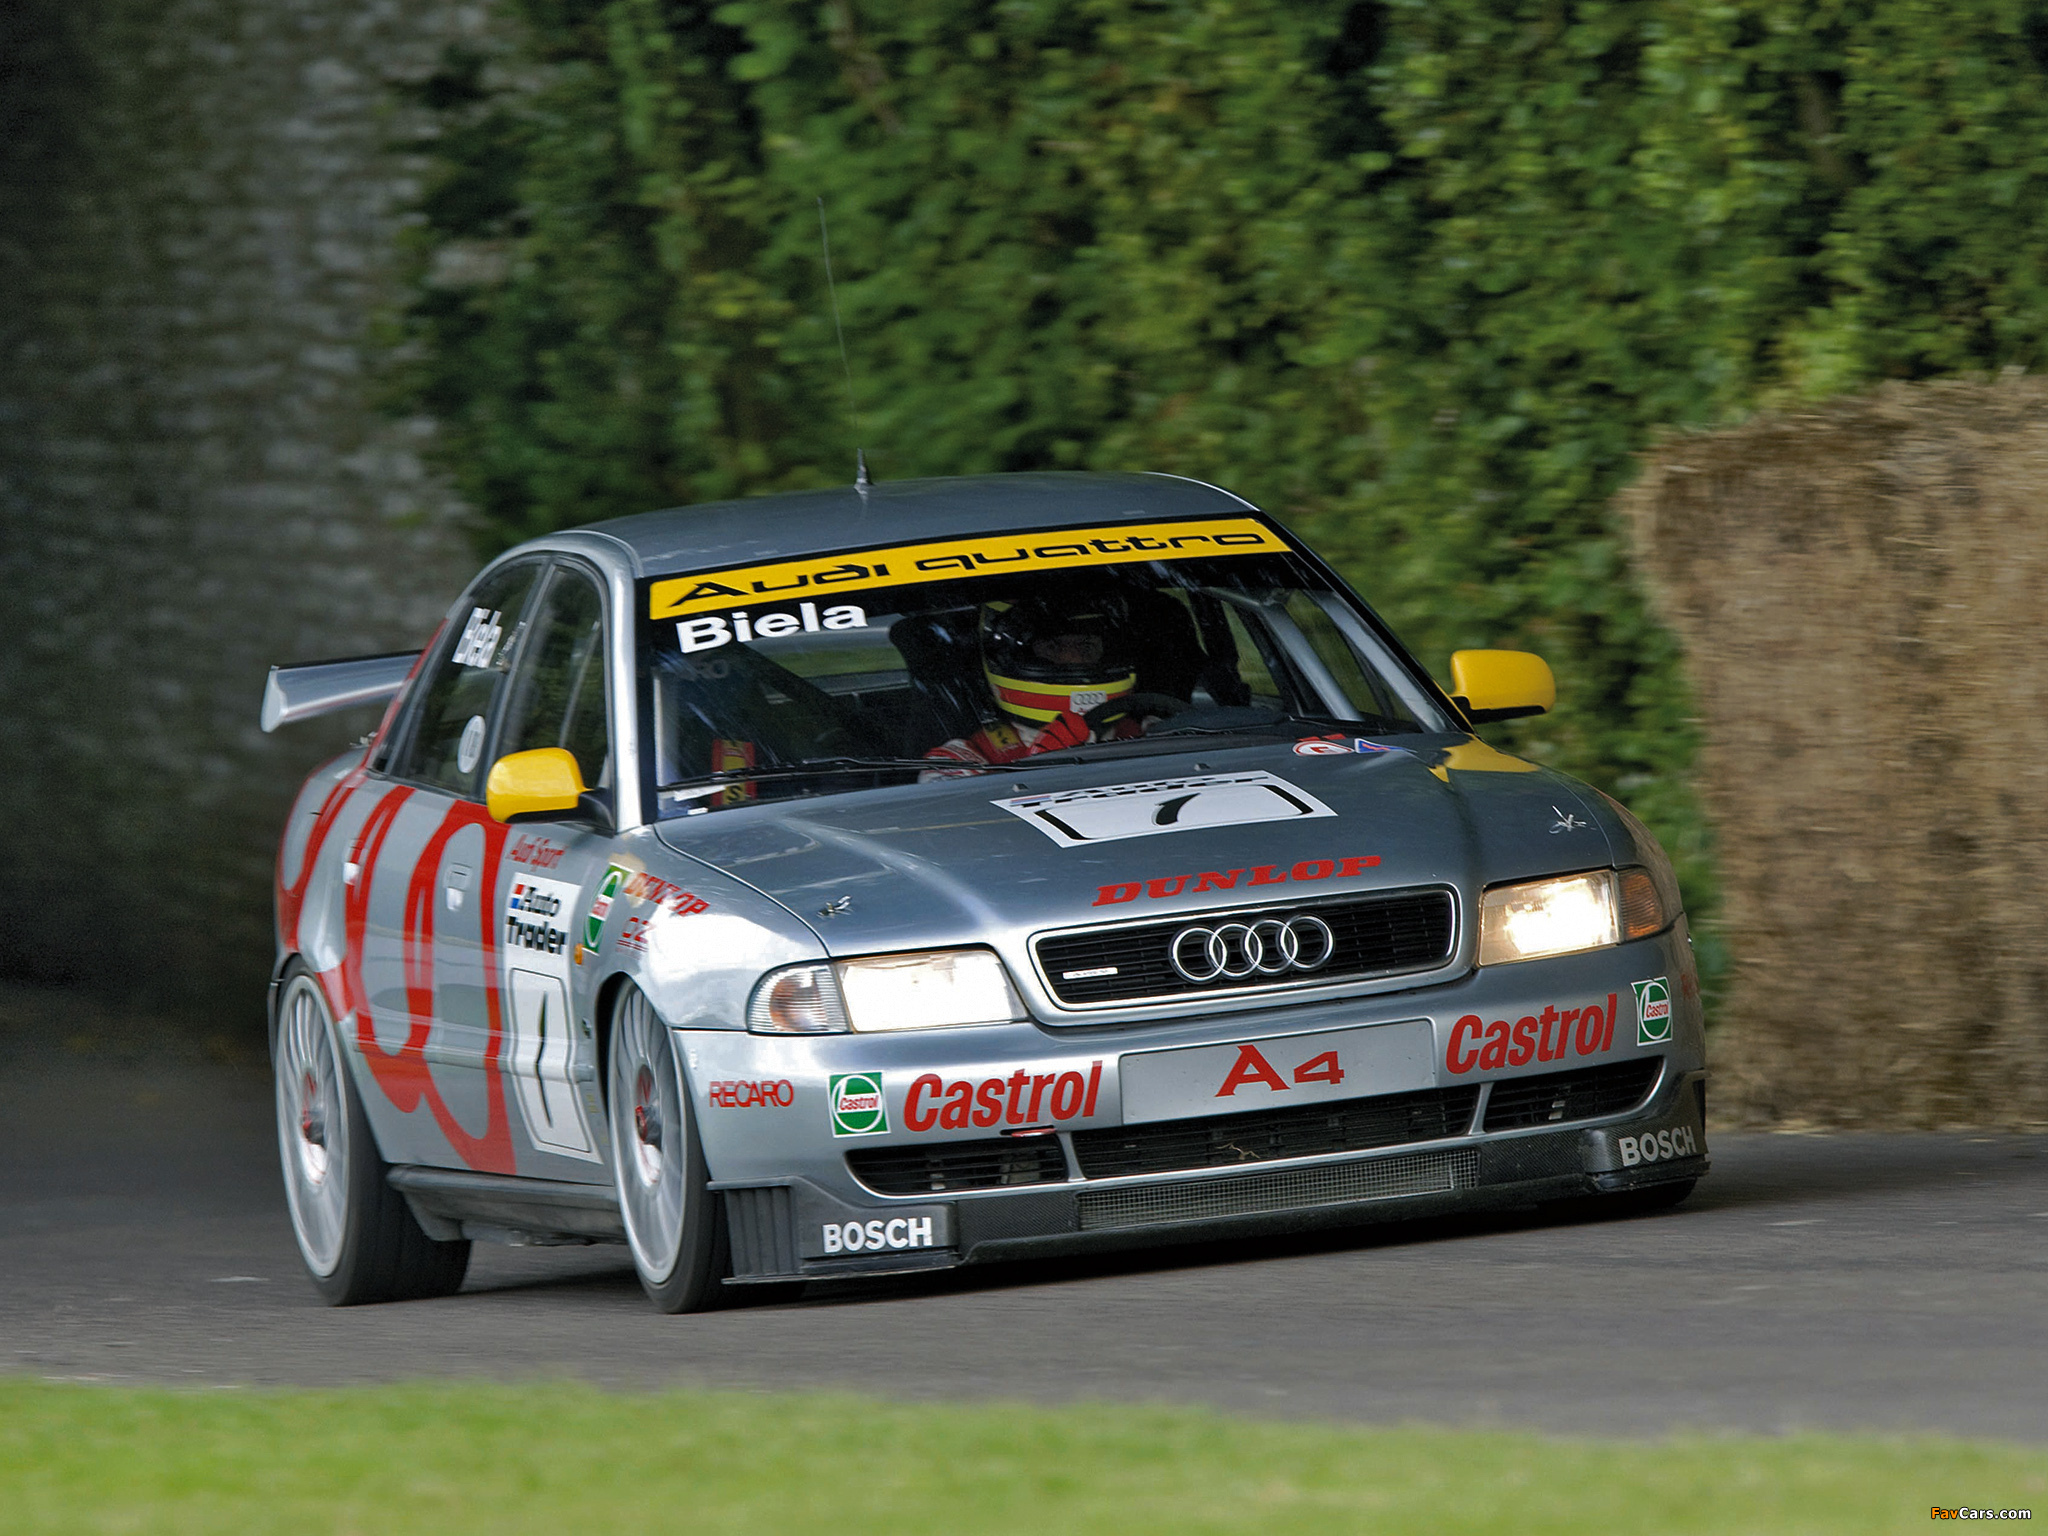 Wallpapers Of Audi A4 Quattro Btcc B5 8d 1996 1997